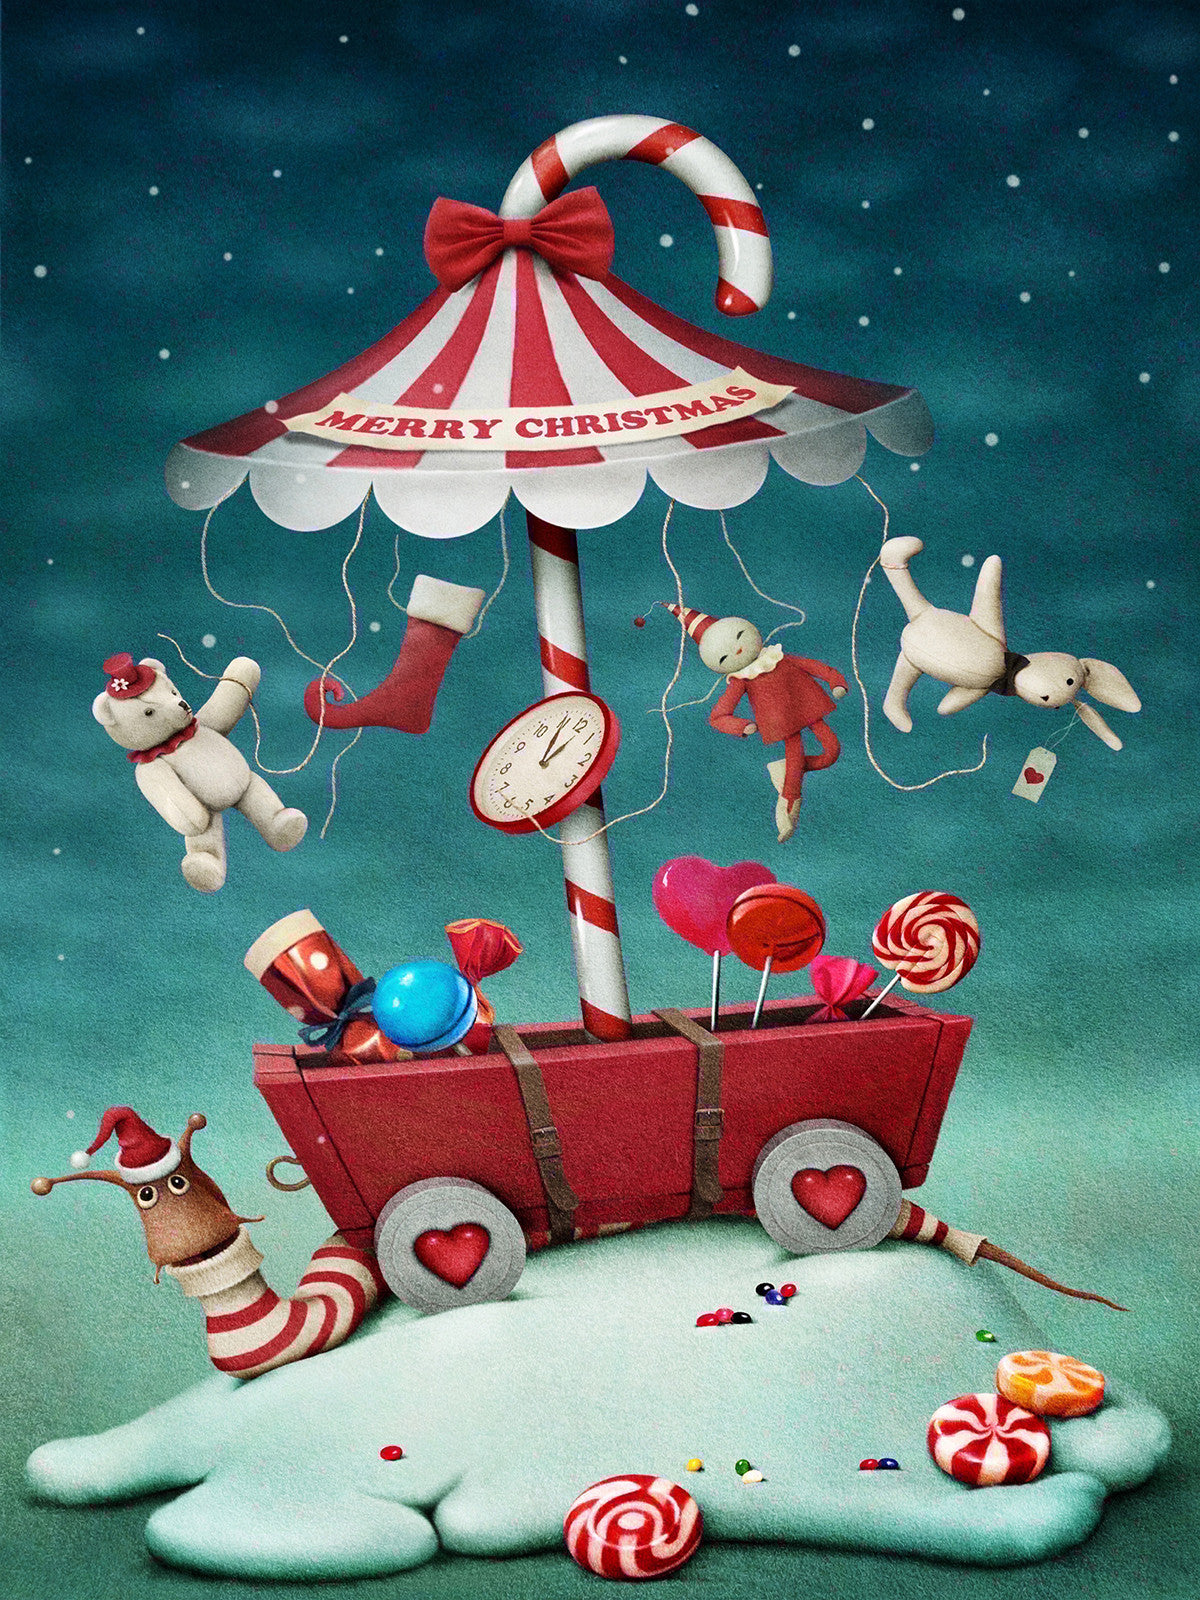 Santa Snail is Coming to Town Printed Photo Backdrop / 9433 - DropPlace